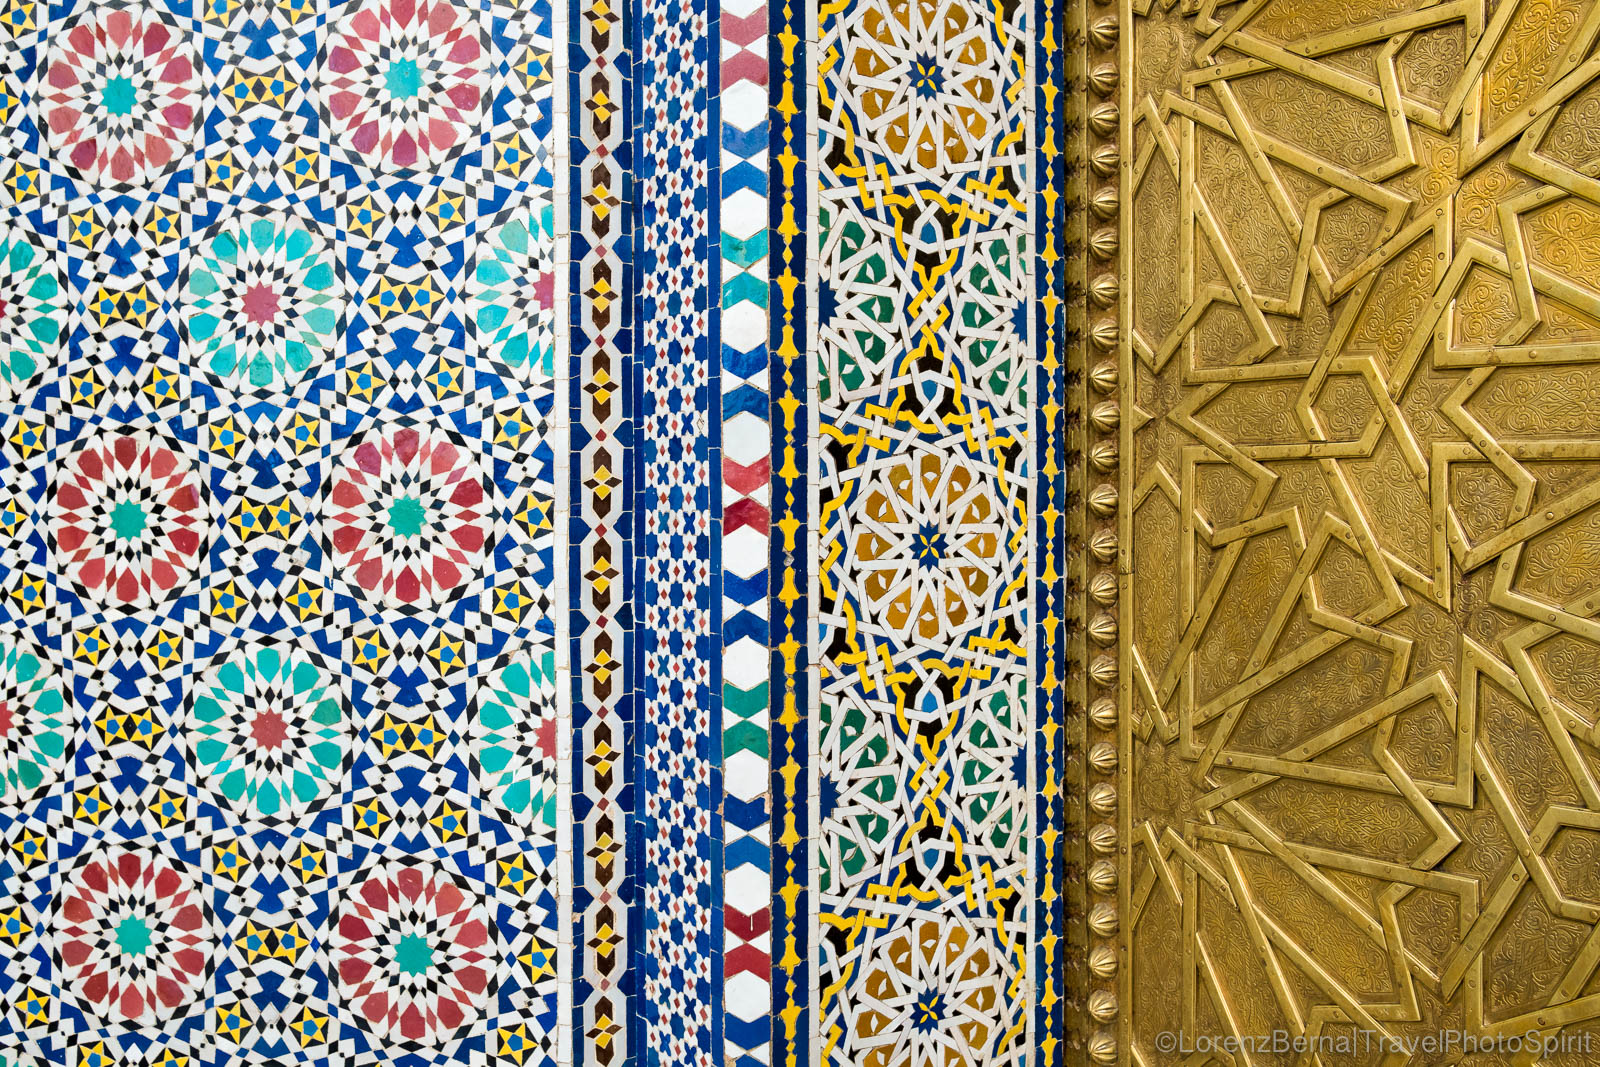 Mosaic designs and patterns standing by the golden gates of the Royal Palace in Fes, Morocco.